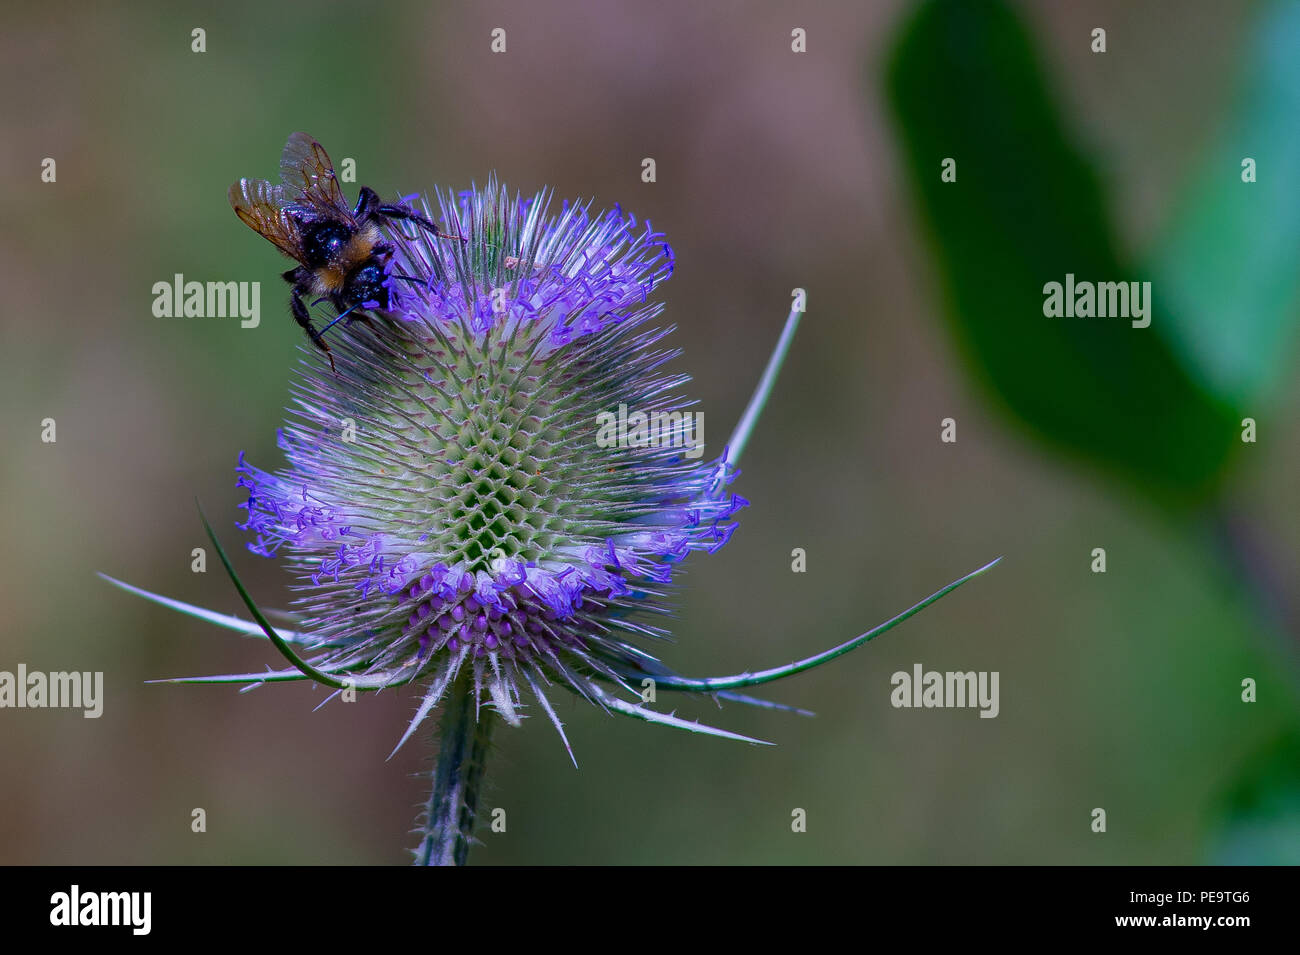 A bumblebee on a thistle - Stock Image